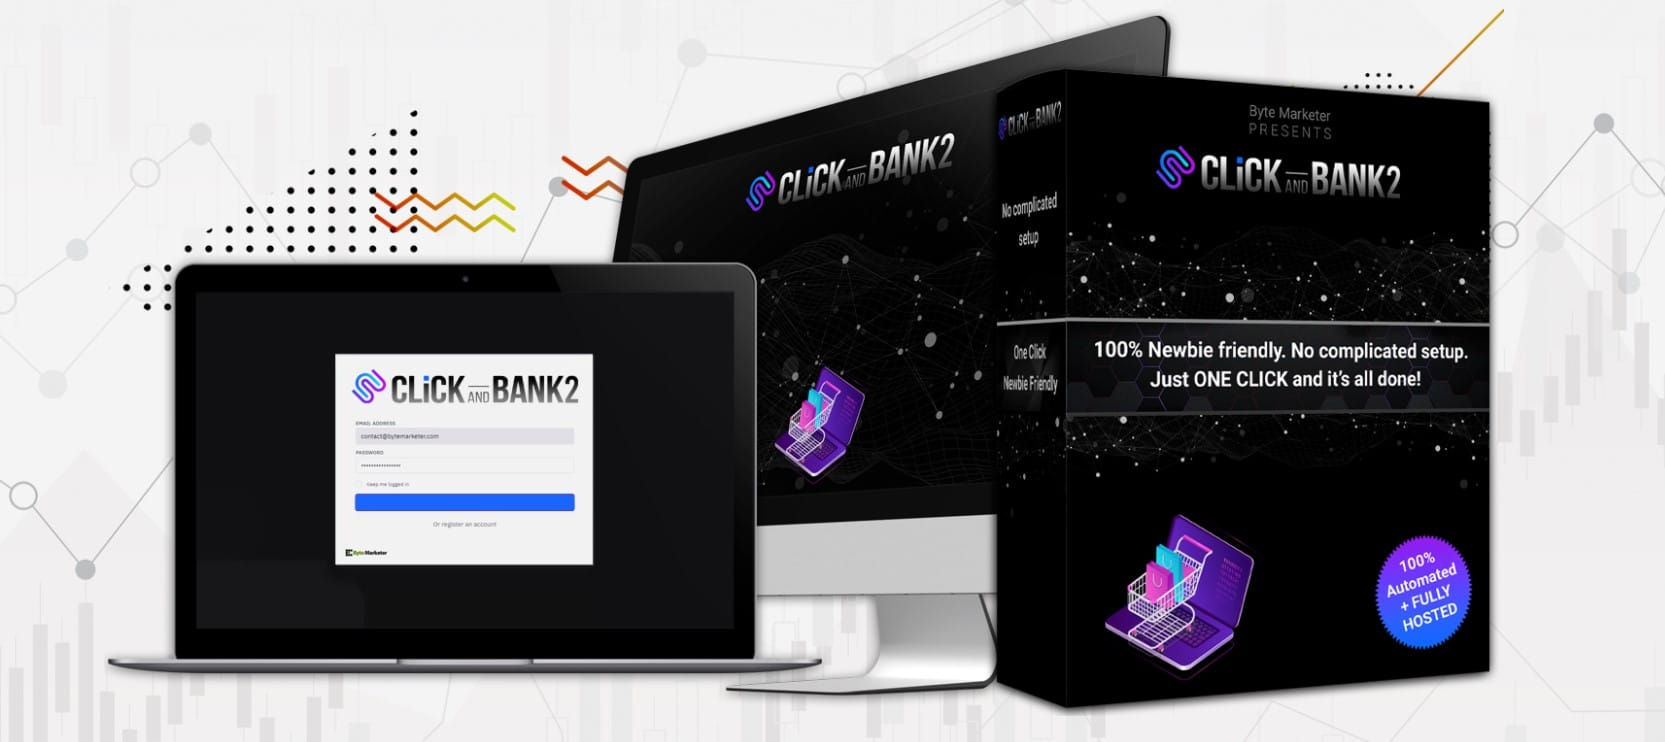 CLICK AND BANK 2 review demo 👉 make money with ClickBank products